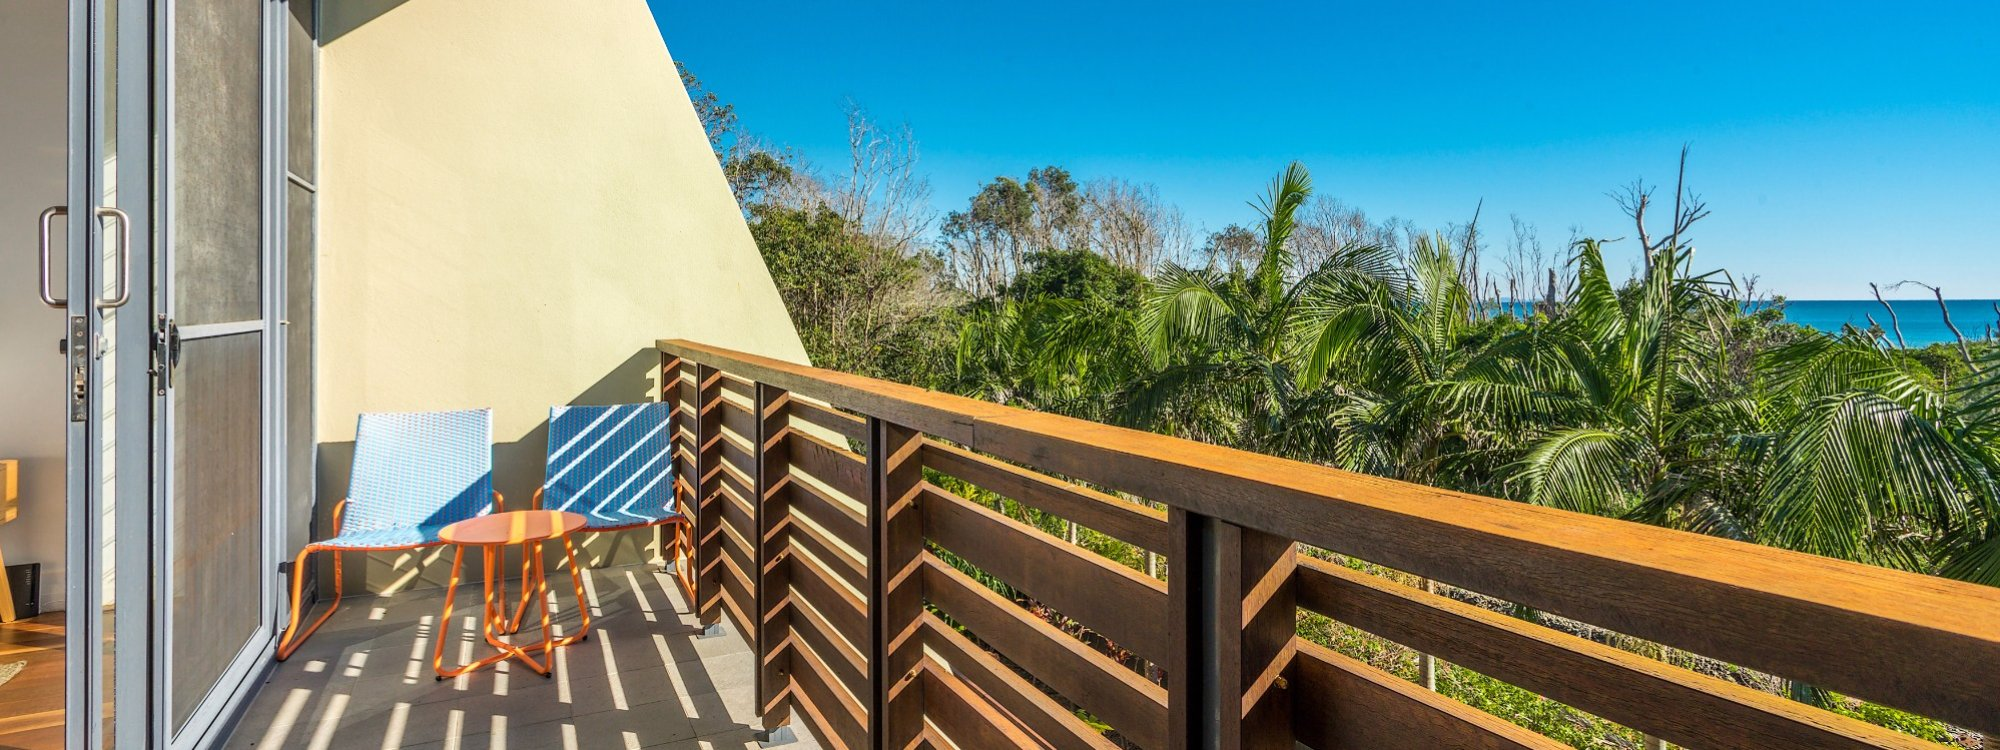 Kiah Beachside - Belongil Beach - Byron Bay - master bedroom deck area